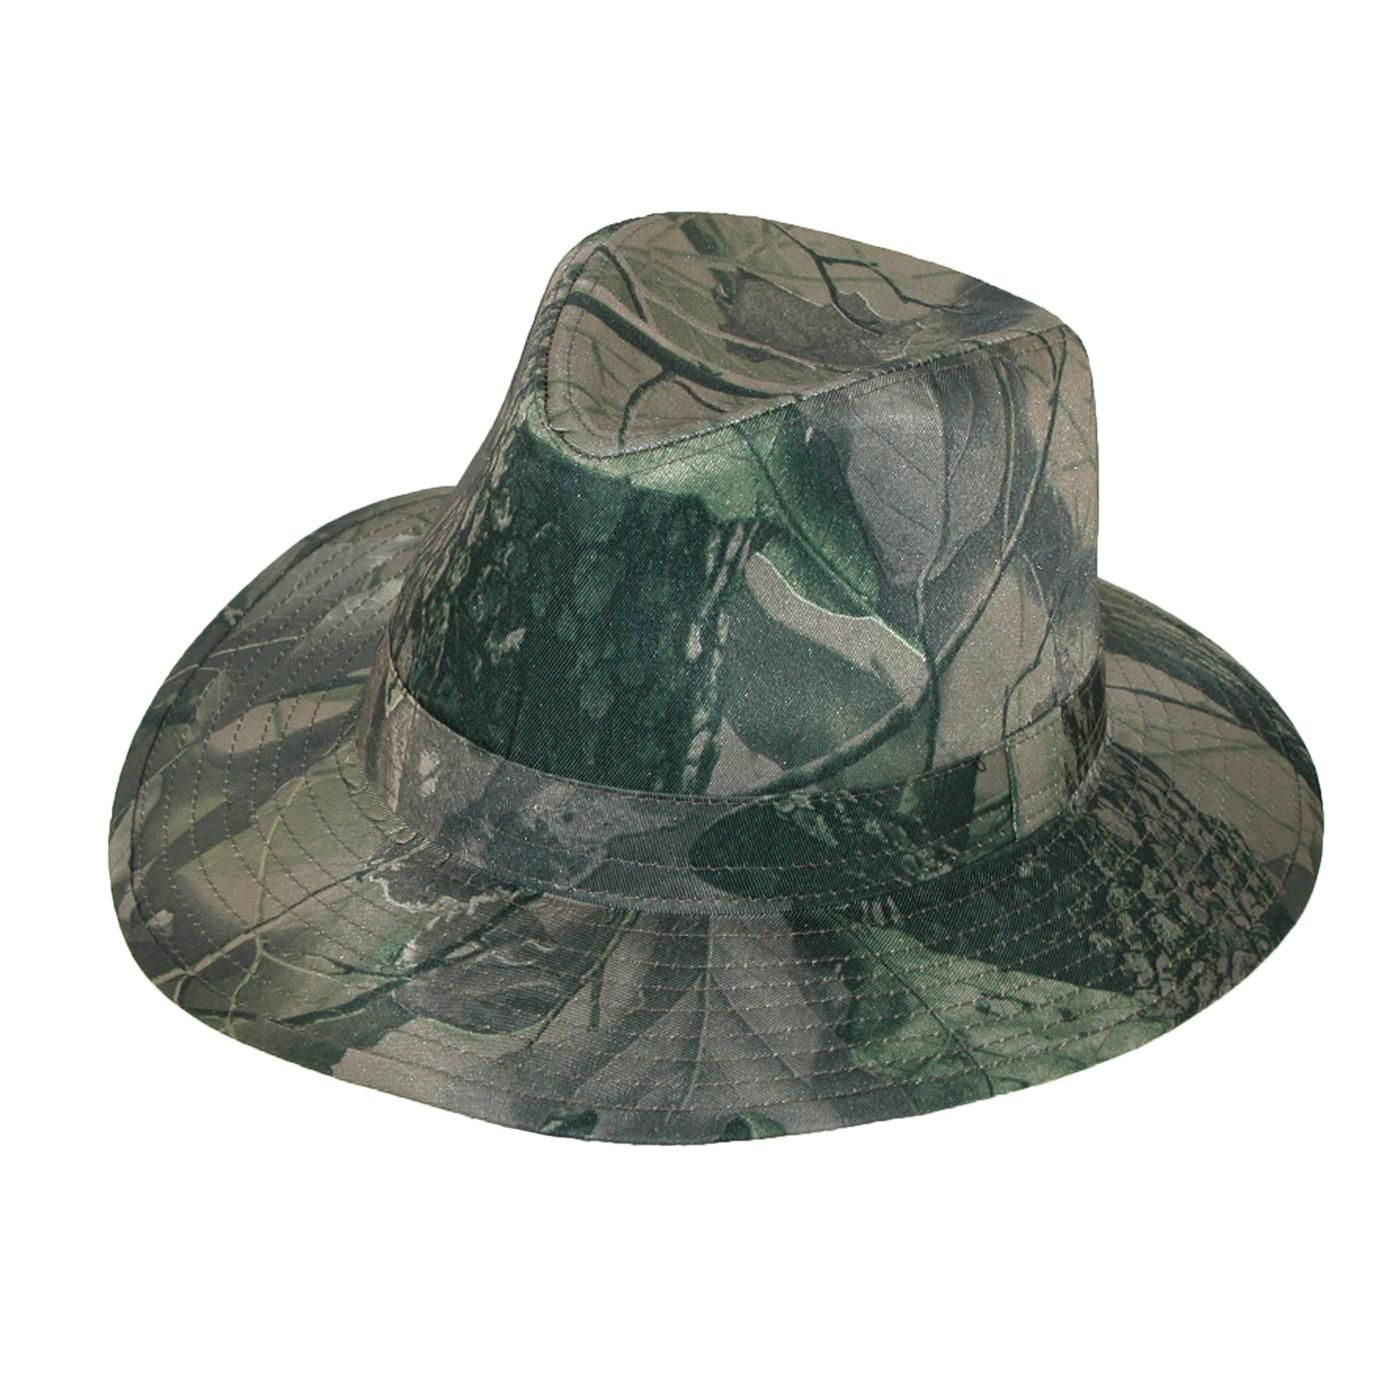 5f72242dc36dc 3 Oaks Mens Camo Print Wide Brim Fedora. Print is realtree camouflage. All  season hat. $12.95